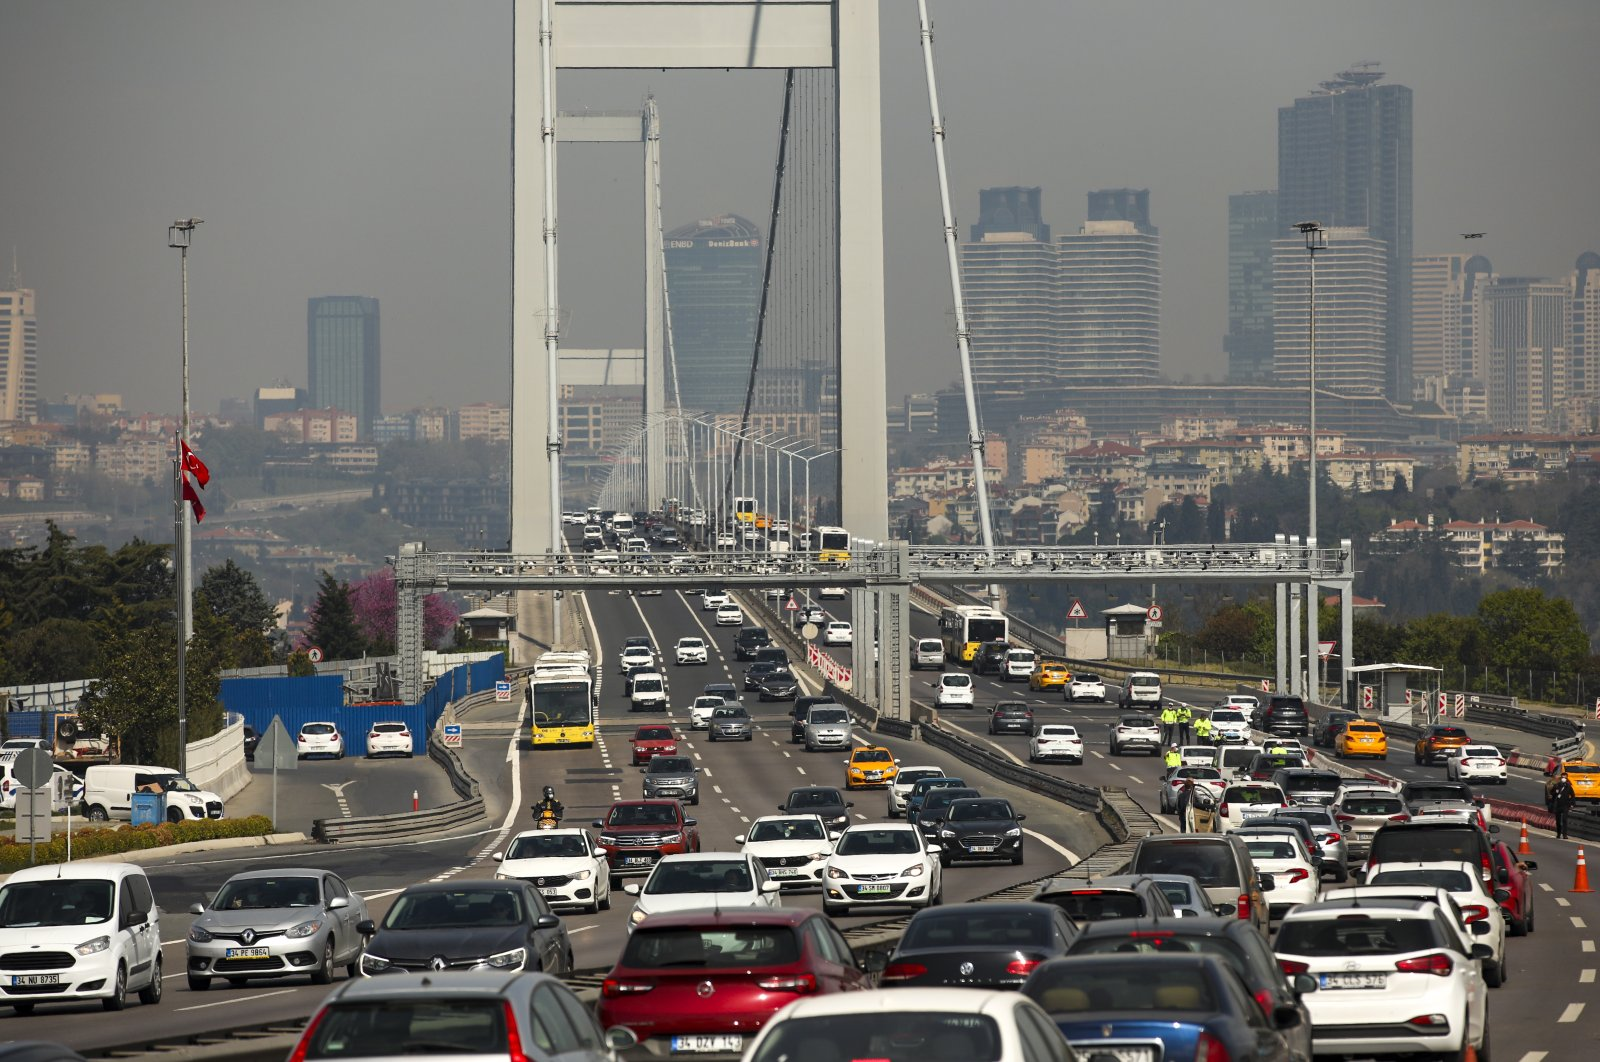 Vehicles with passengers commuting to work cross the July 15 Martyrs' Bridge, formerly known as the Bosporus Bridge, in Istanbul, Turkey, April 30, 2021. (AP Photo)